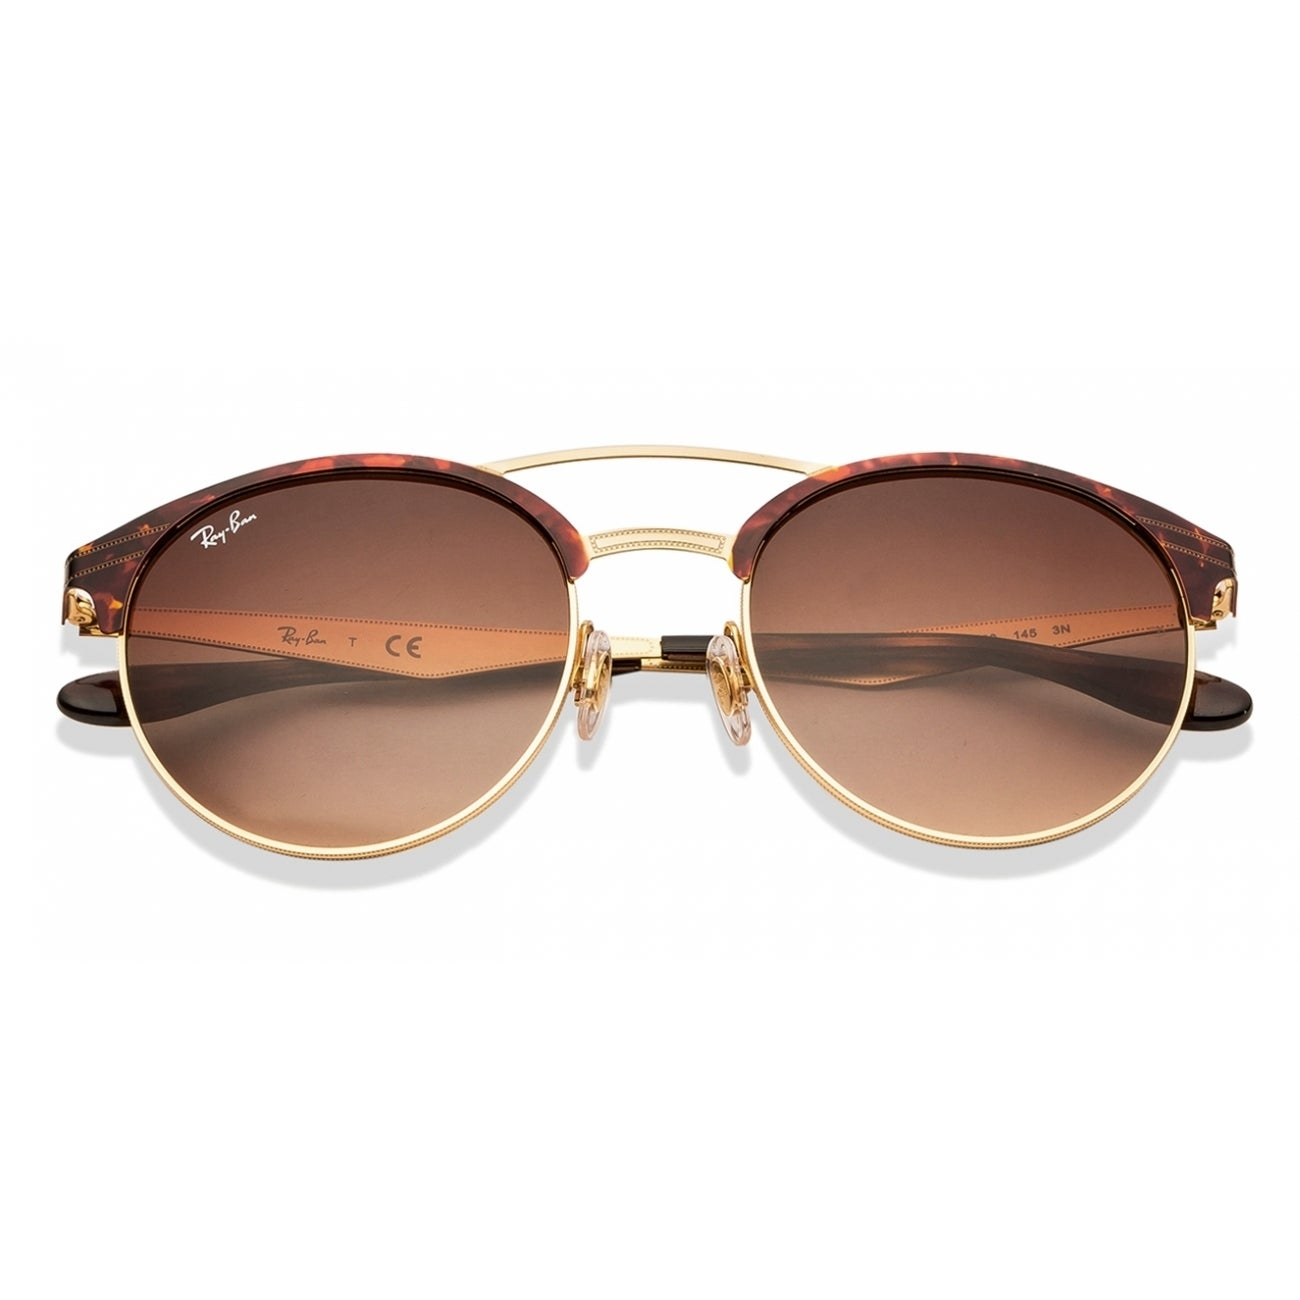 fb8d93924a2 Shop Ray-Ban Unisex RB3545 900813 Tortoise Gold Frame Brown Gradient 54 mm  Lens Sunglasses - Free Shipping Today - Overstock.com - 16740866